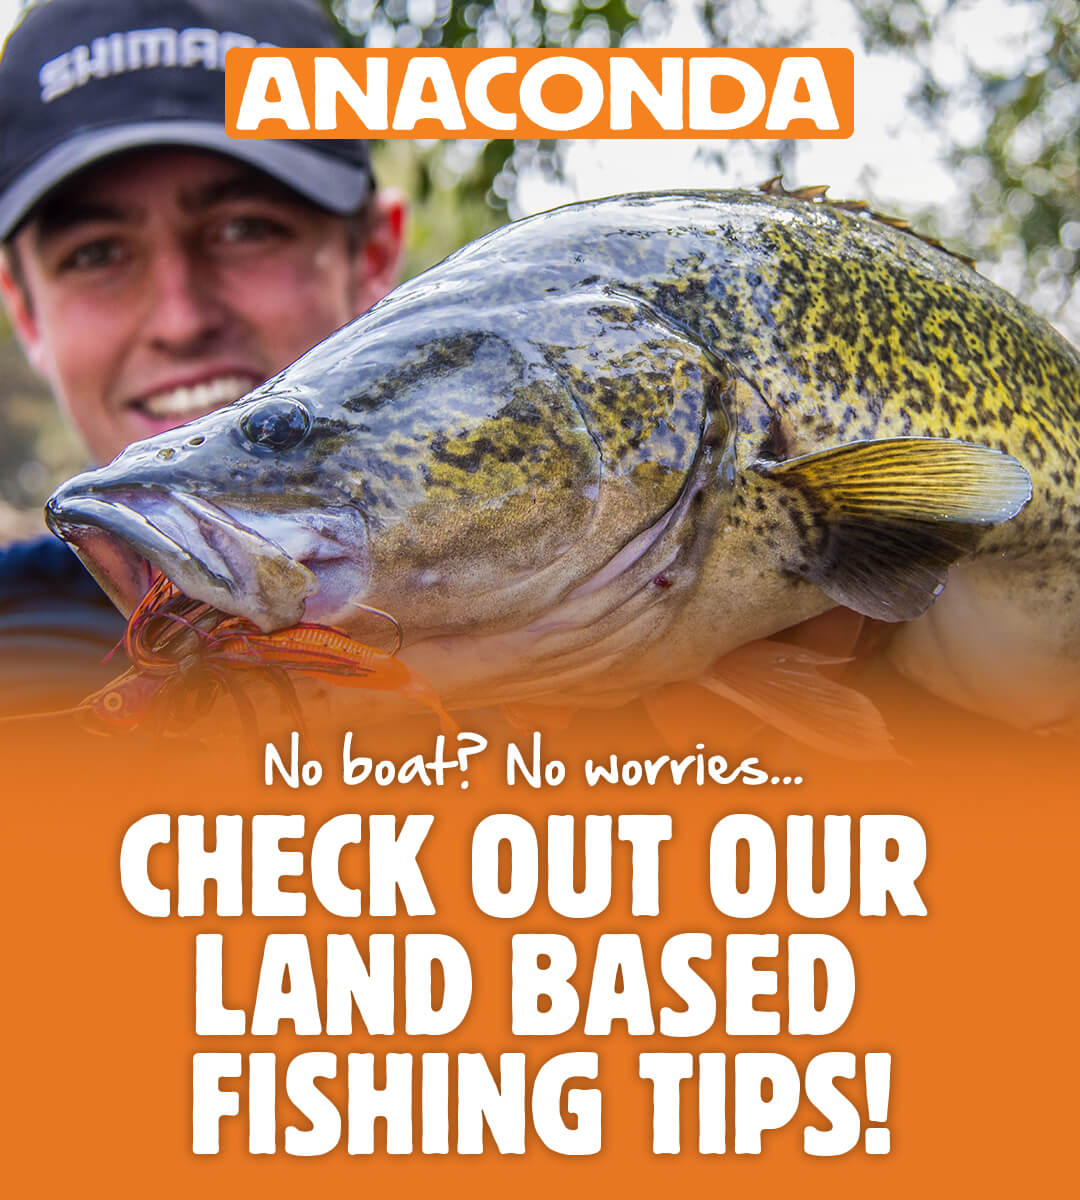 Land-Based Fishing Tips Brought to you by Anaconda